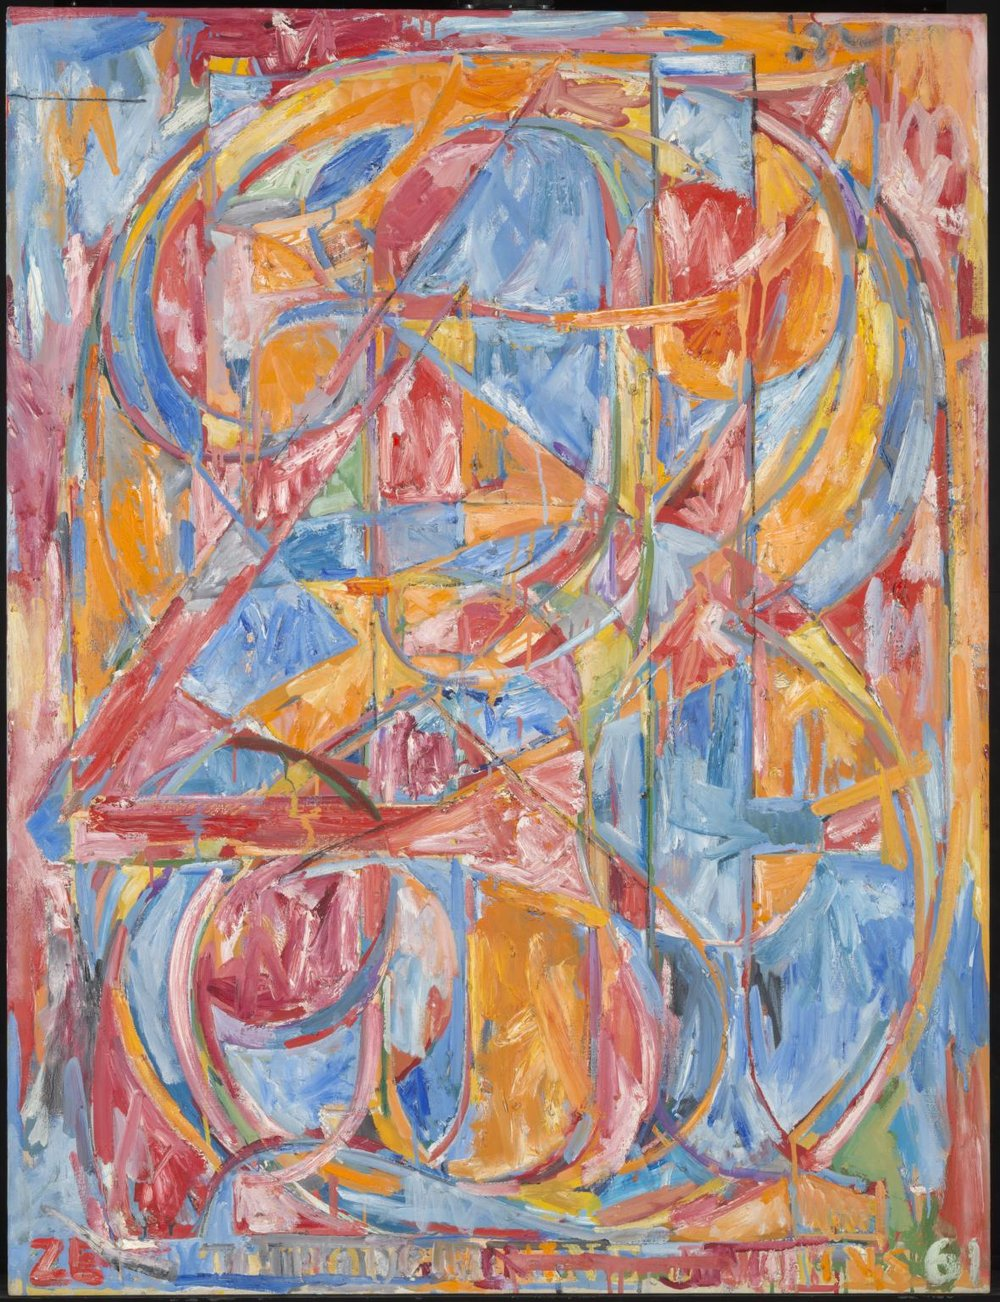 Jasper Johns, 0 Through 9, 1961